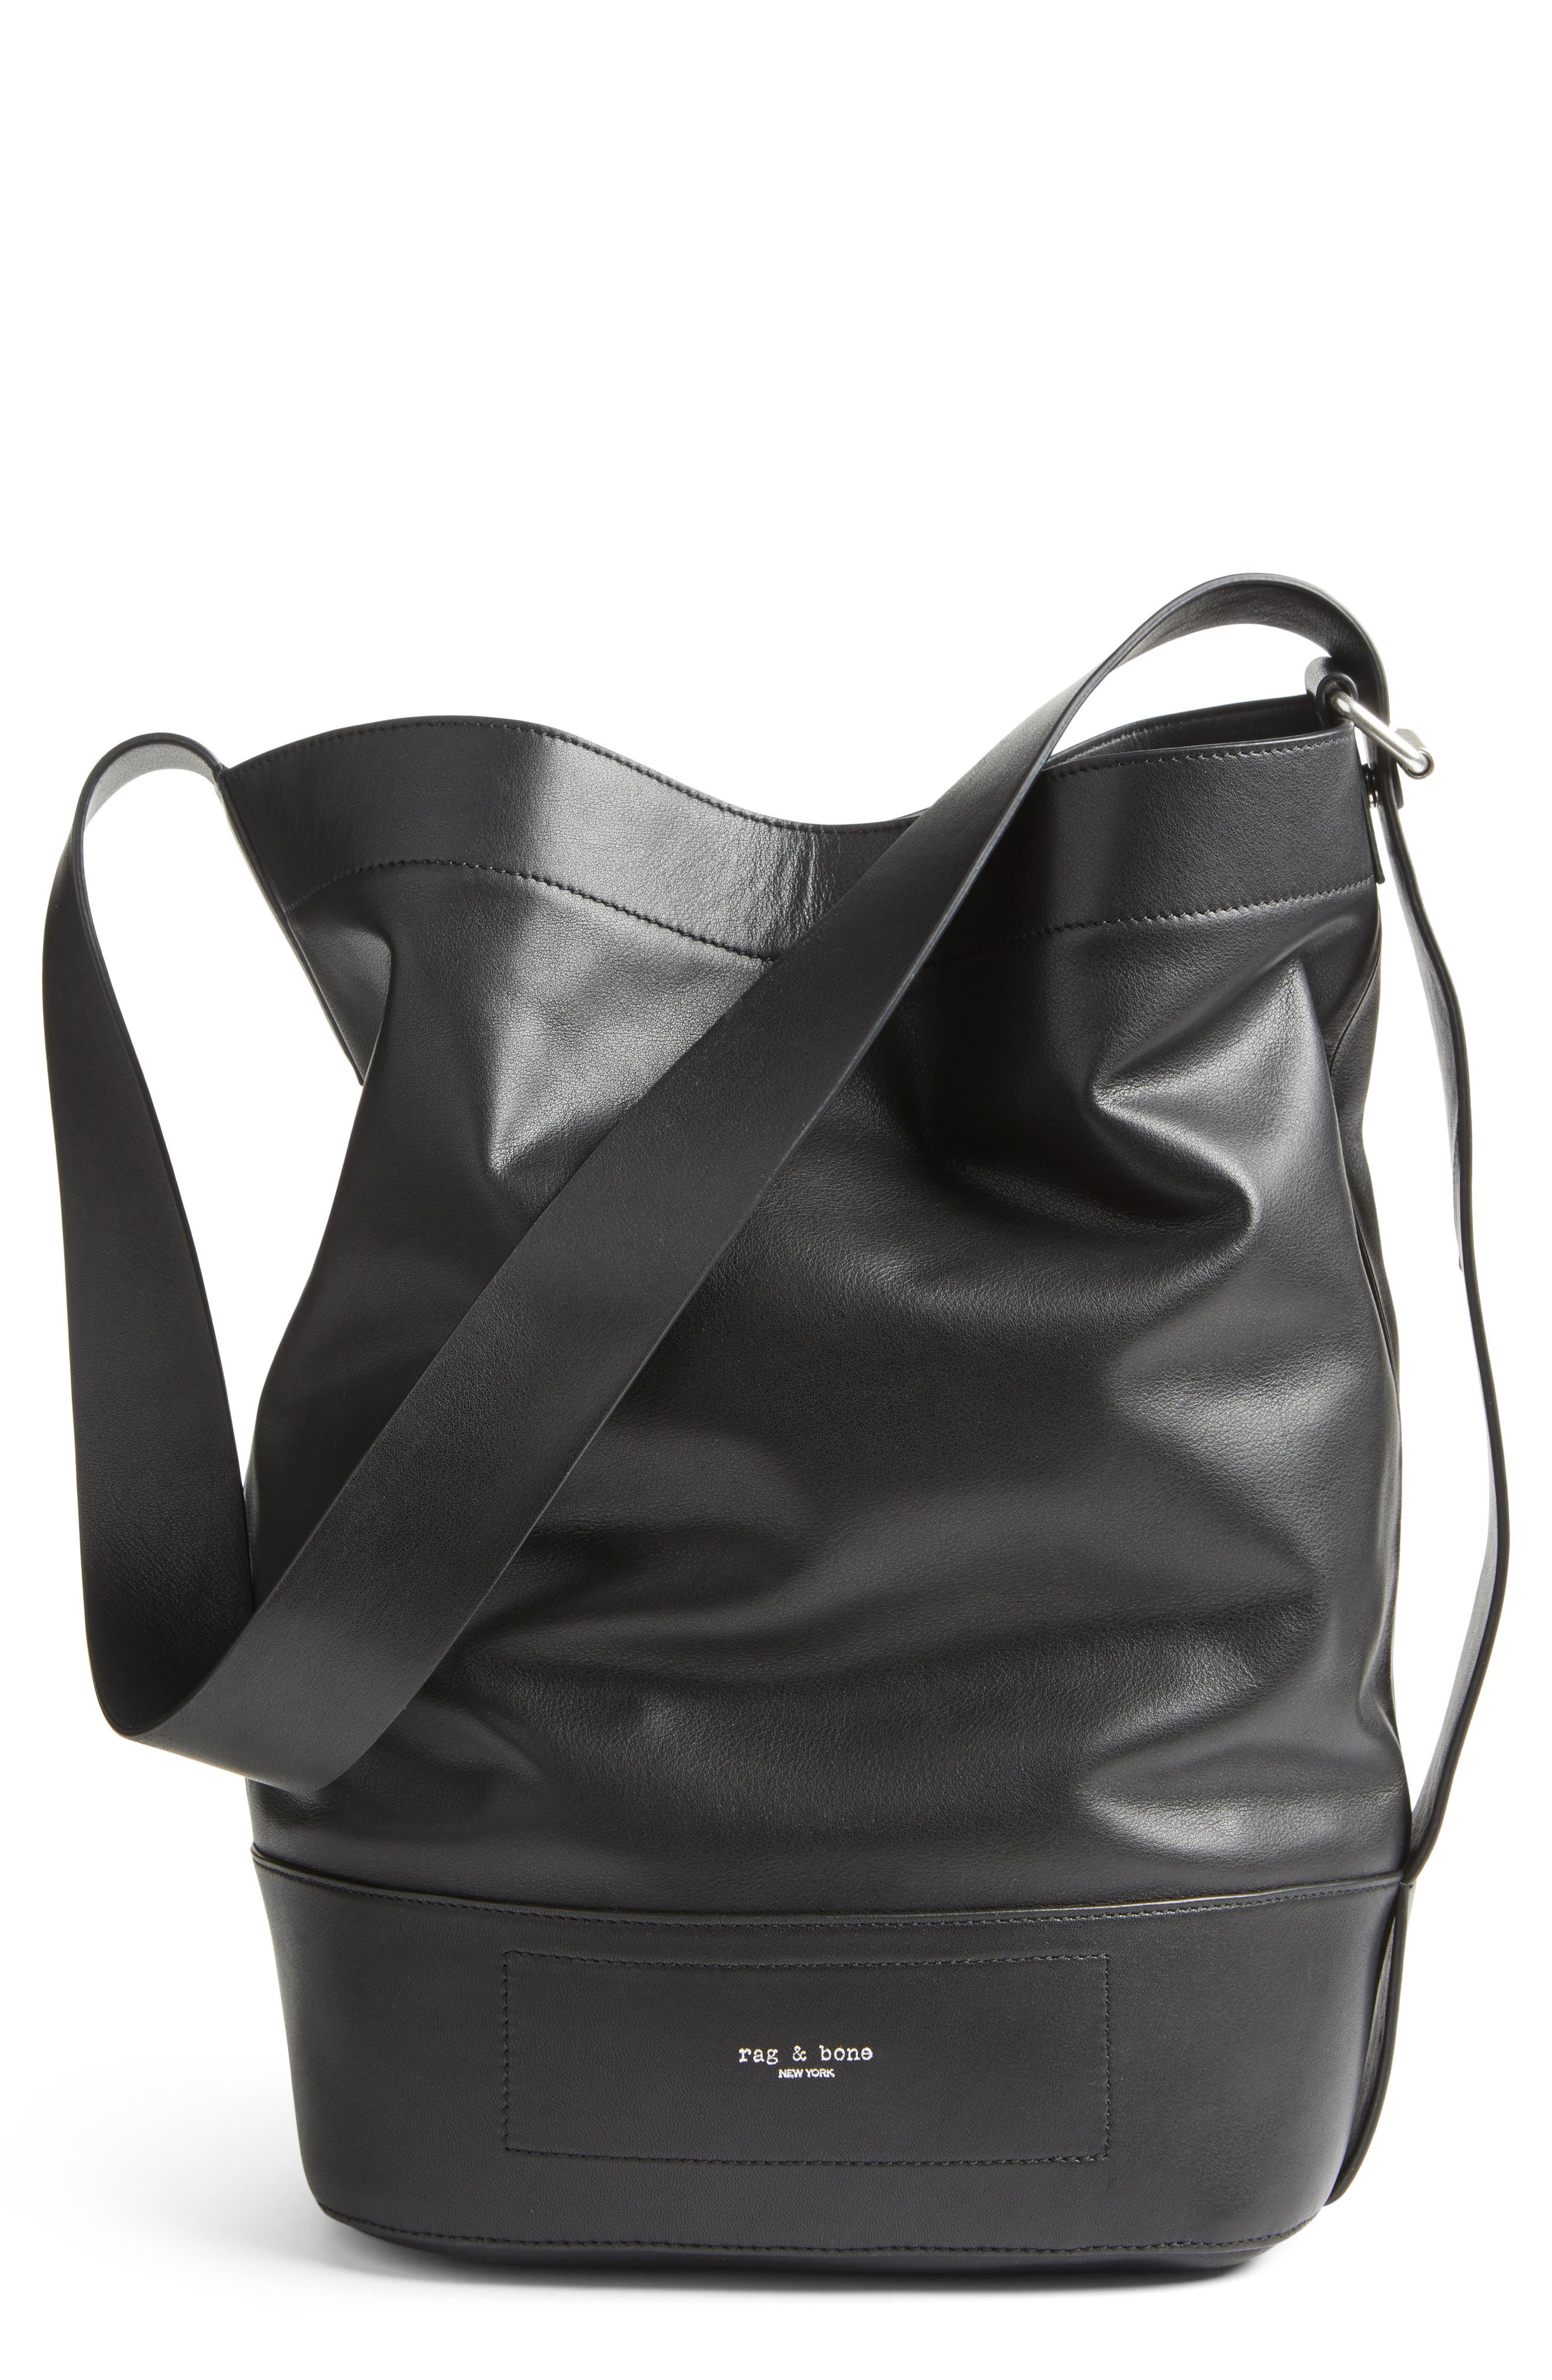 rag & bone Walker Sling Leather Bucket Bag